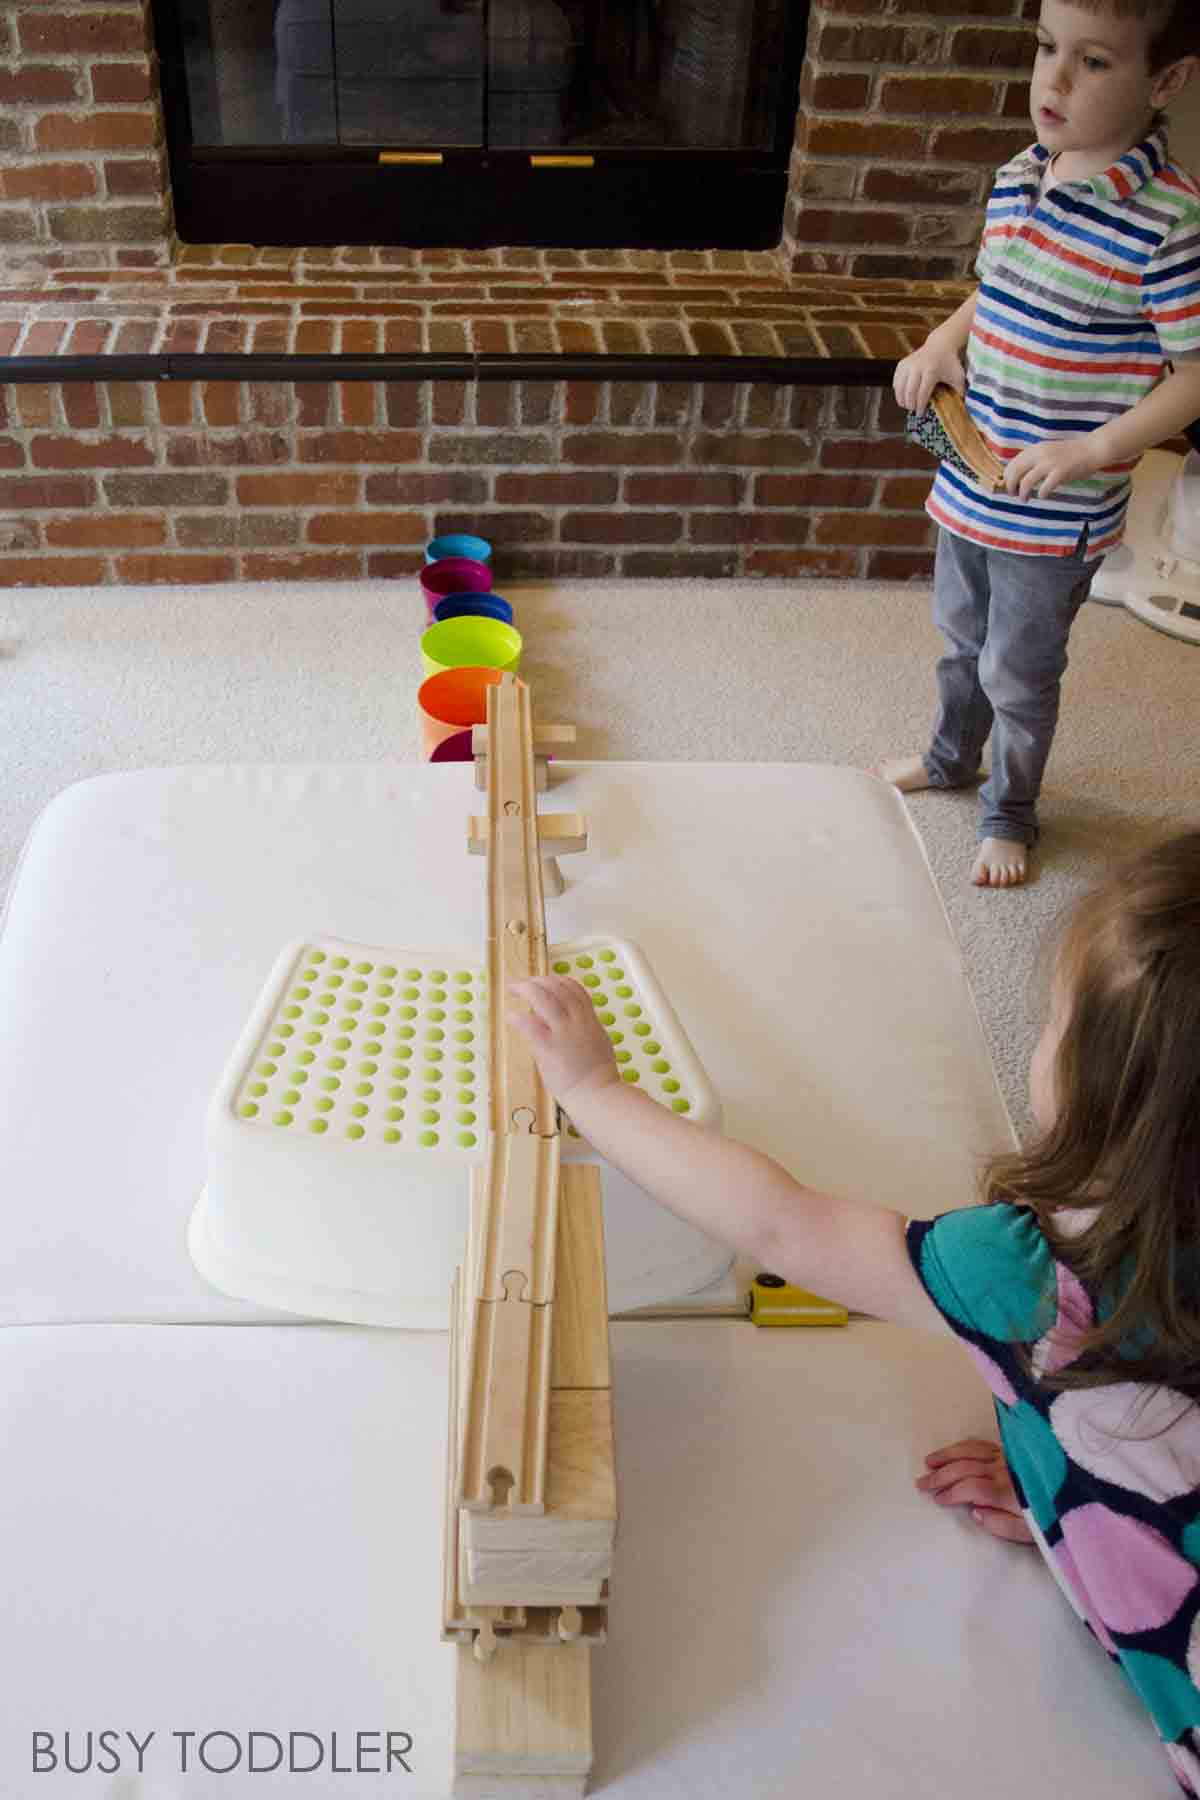 TRAIN TRACK SKEE BALL: We loved the book Old Tracks, New Tricks and it inspired this wooden train track activity. Making a fun indoor activitTRAIN TRACK SKEE BALL: We loved the book Old Tracks, New Tricks and it inspired this wooden train tracks activity. Making a fun indoor activity that toddlers and preschoolers will love. This STEM activity was so much fun! y that toddlers and preschoolers will love. This STEM activity was so much fun!